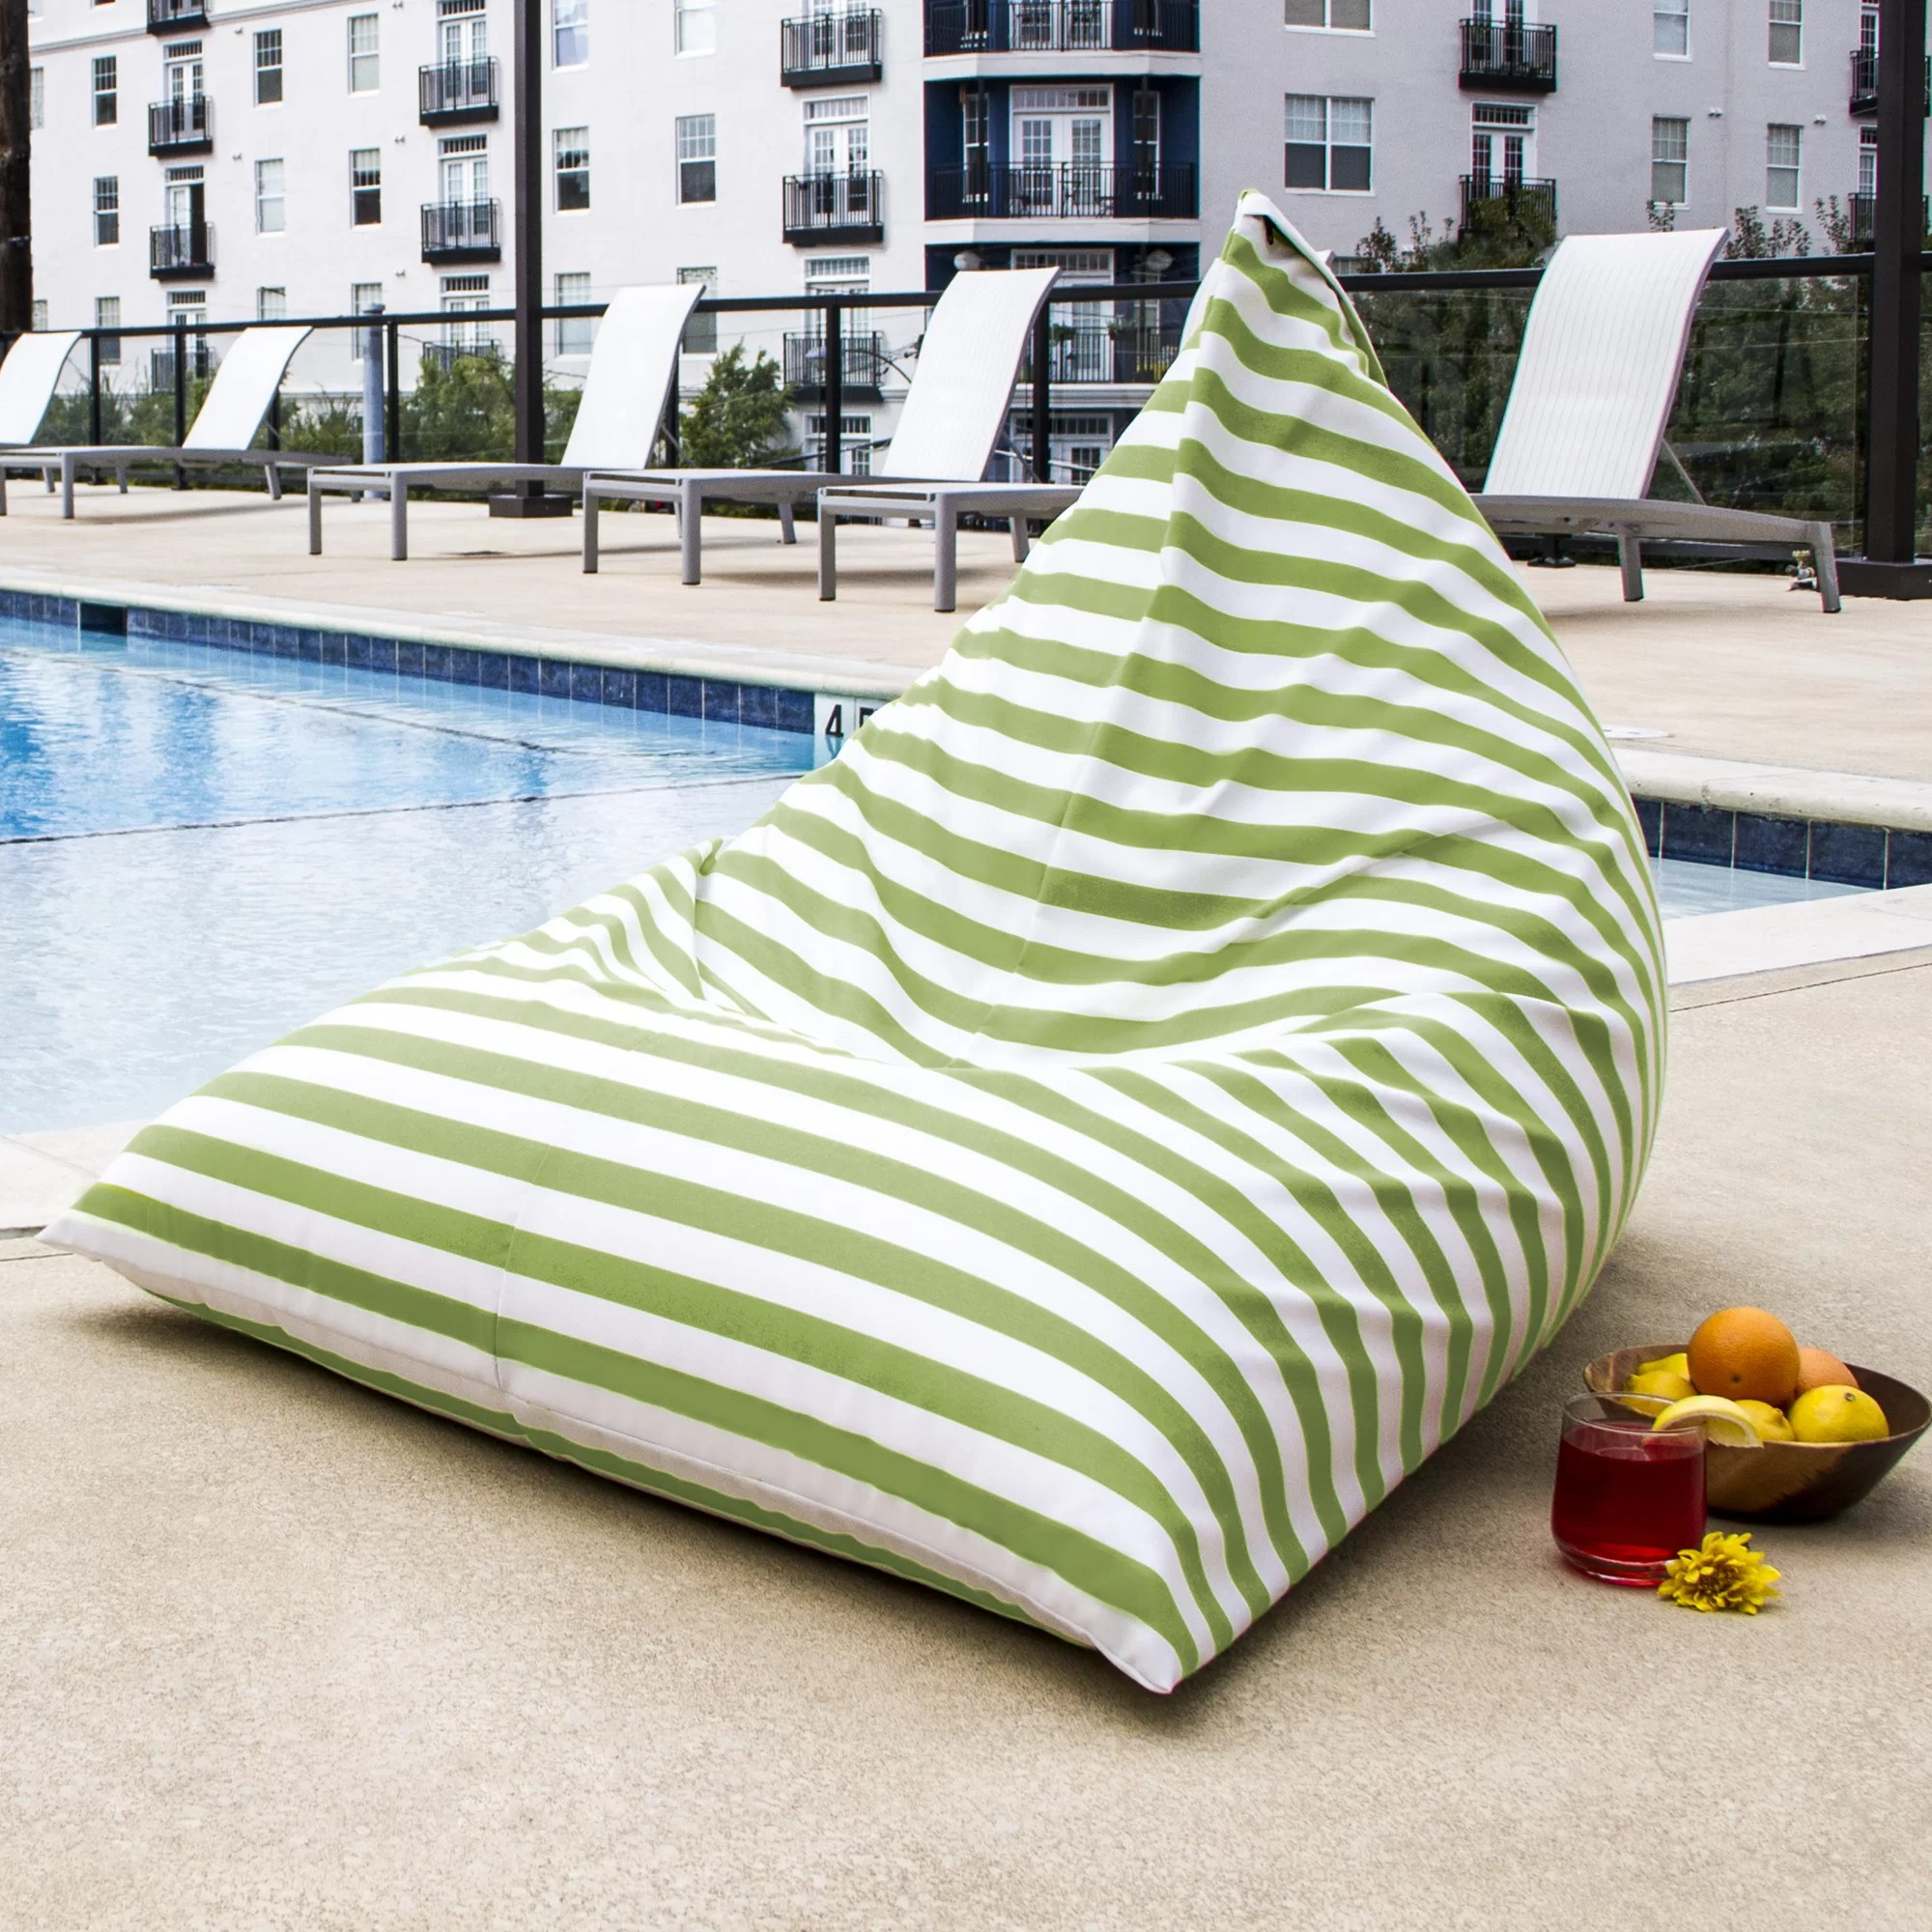 Outdoor Bean Bag Chairs Twist Outdoor Bean Bag Chair Wayfair